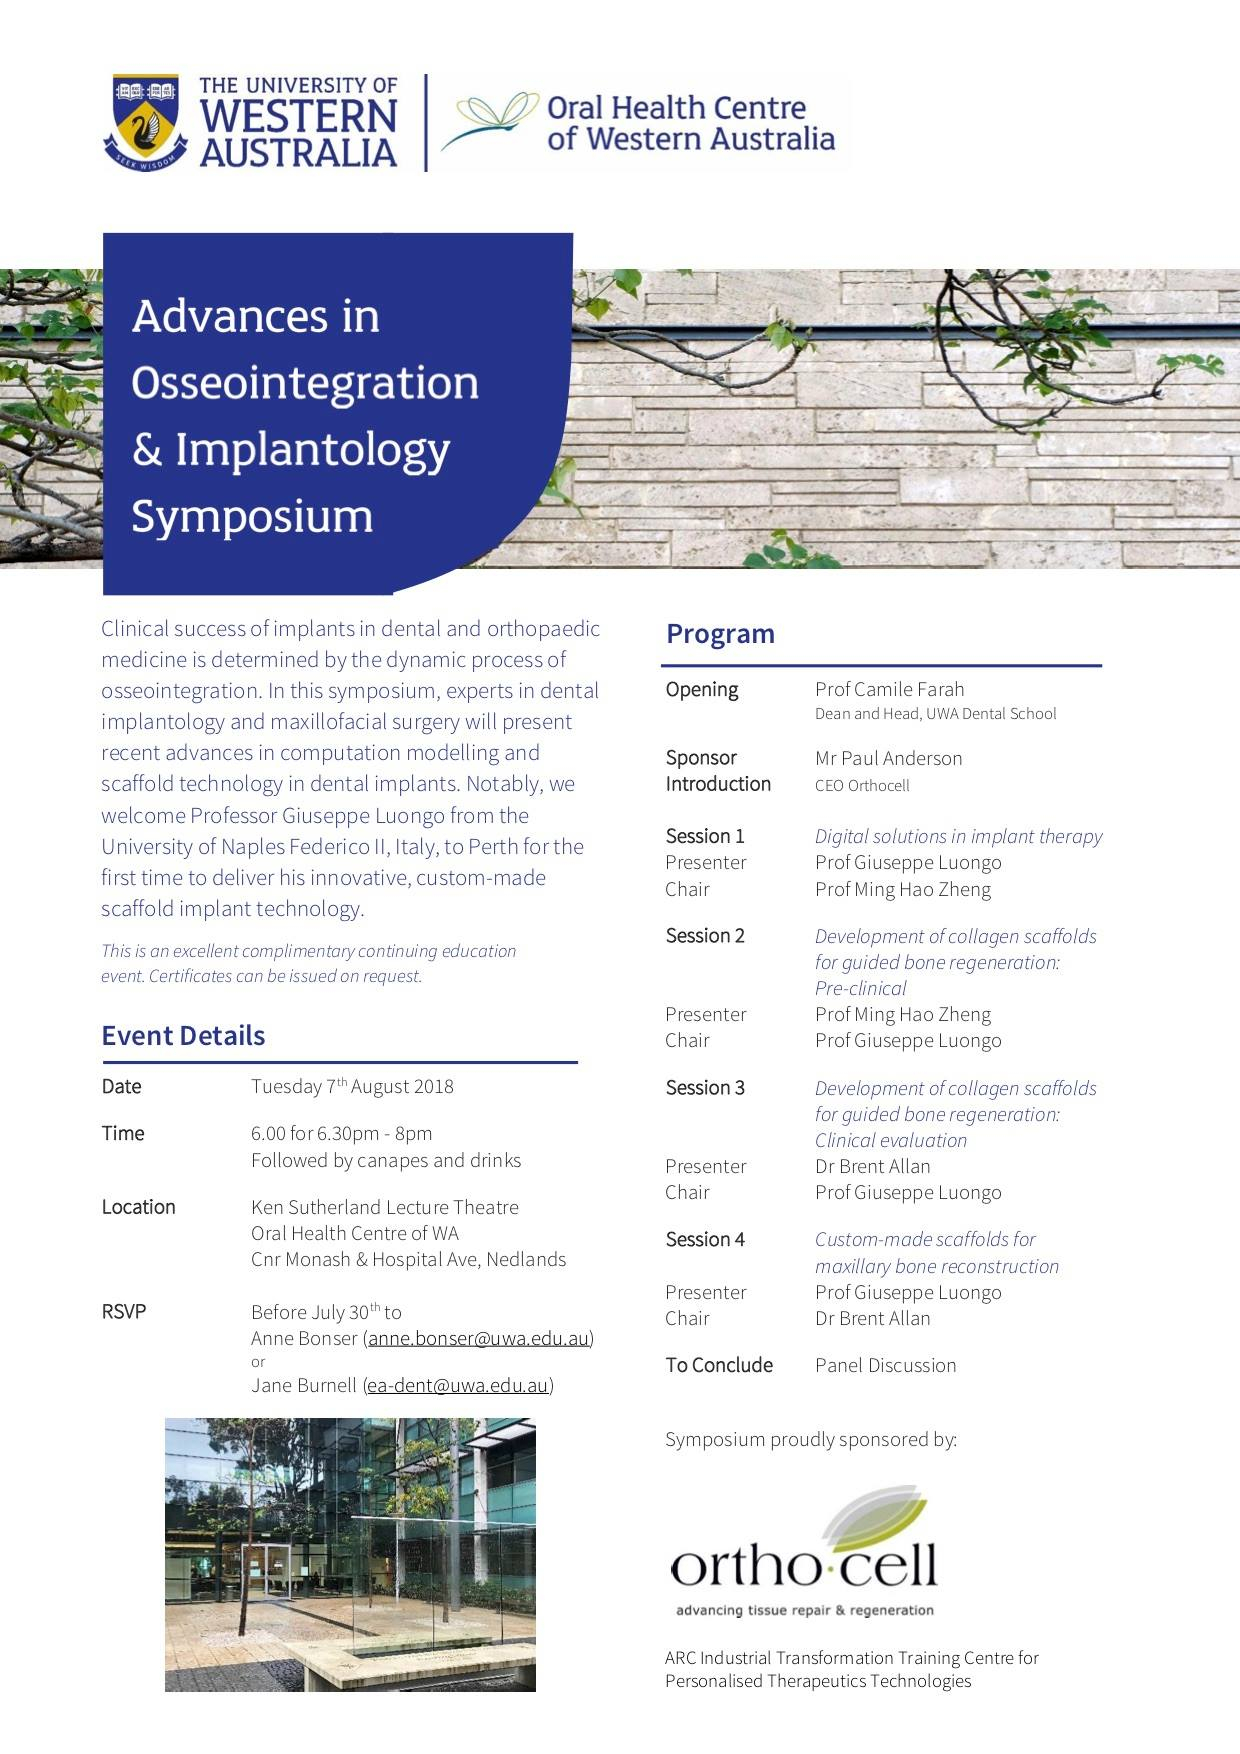 Oral-Health-Australia- Osseointegration-Symposium